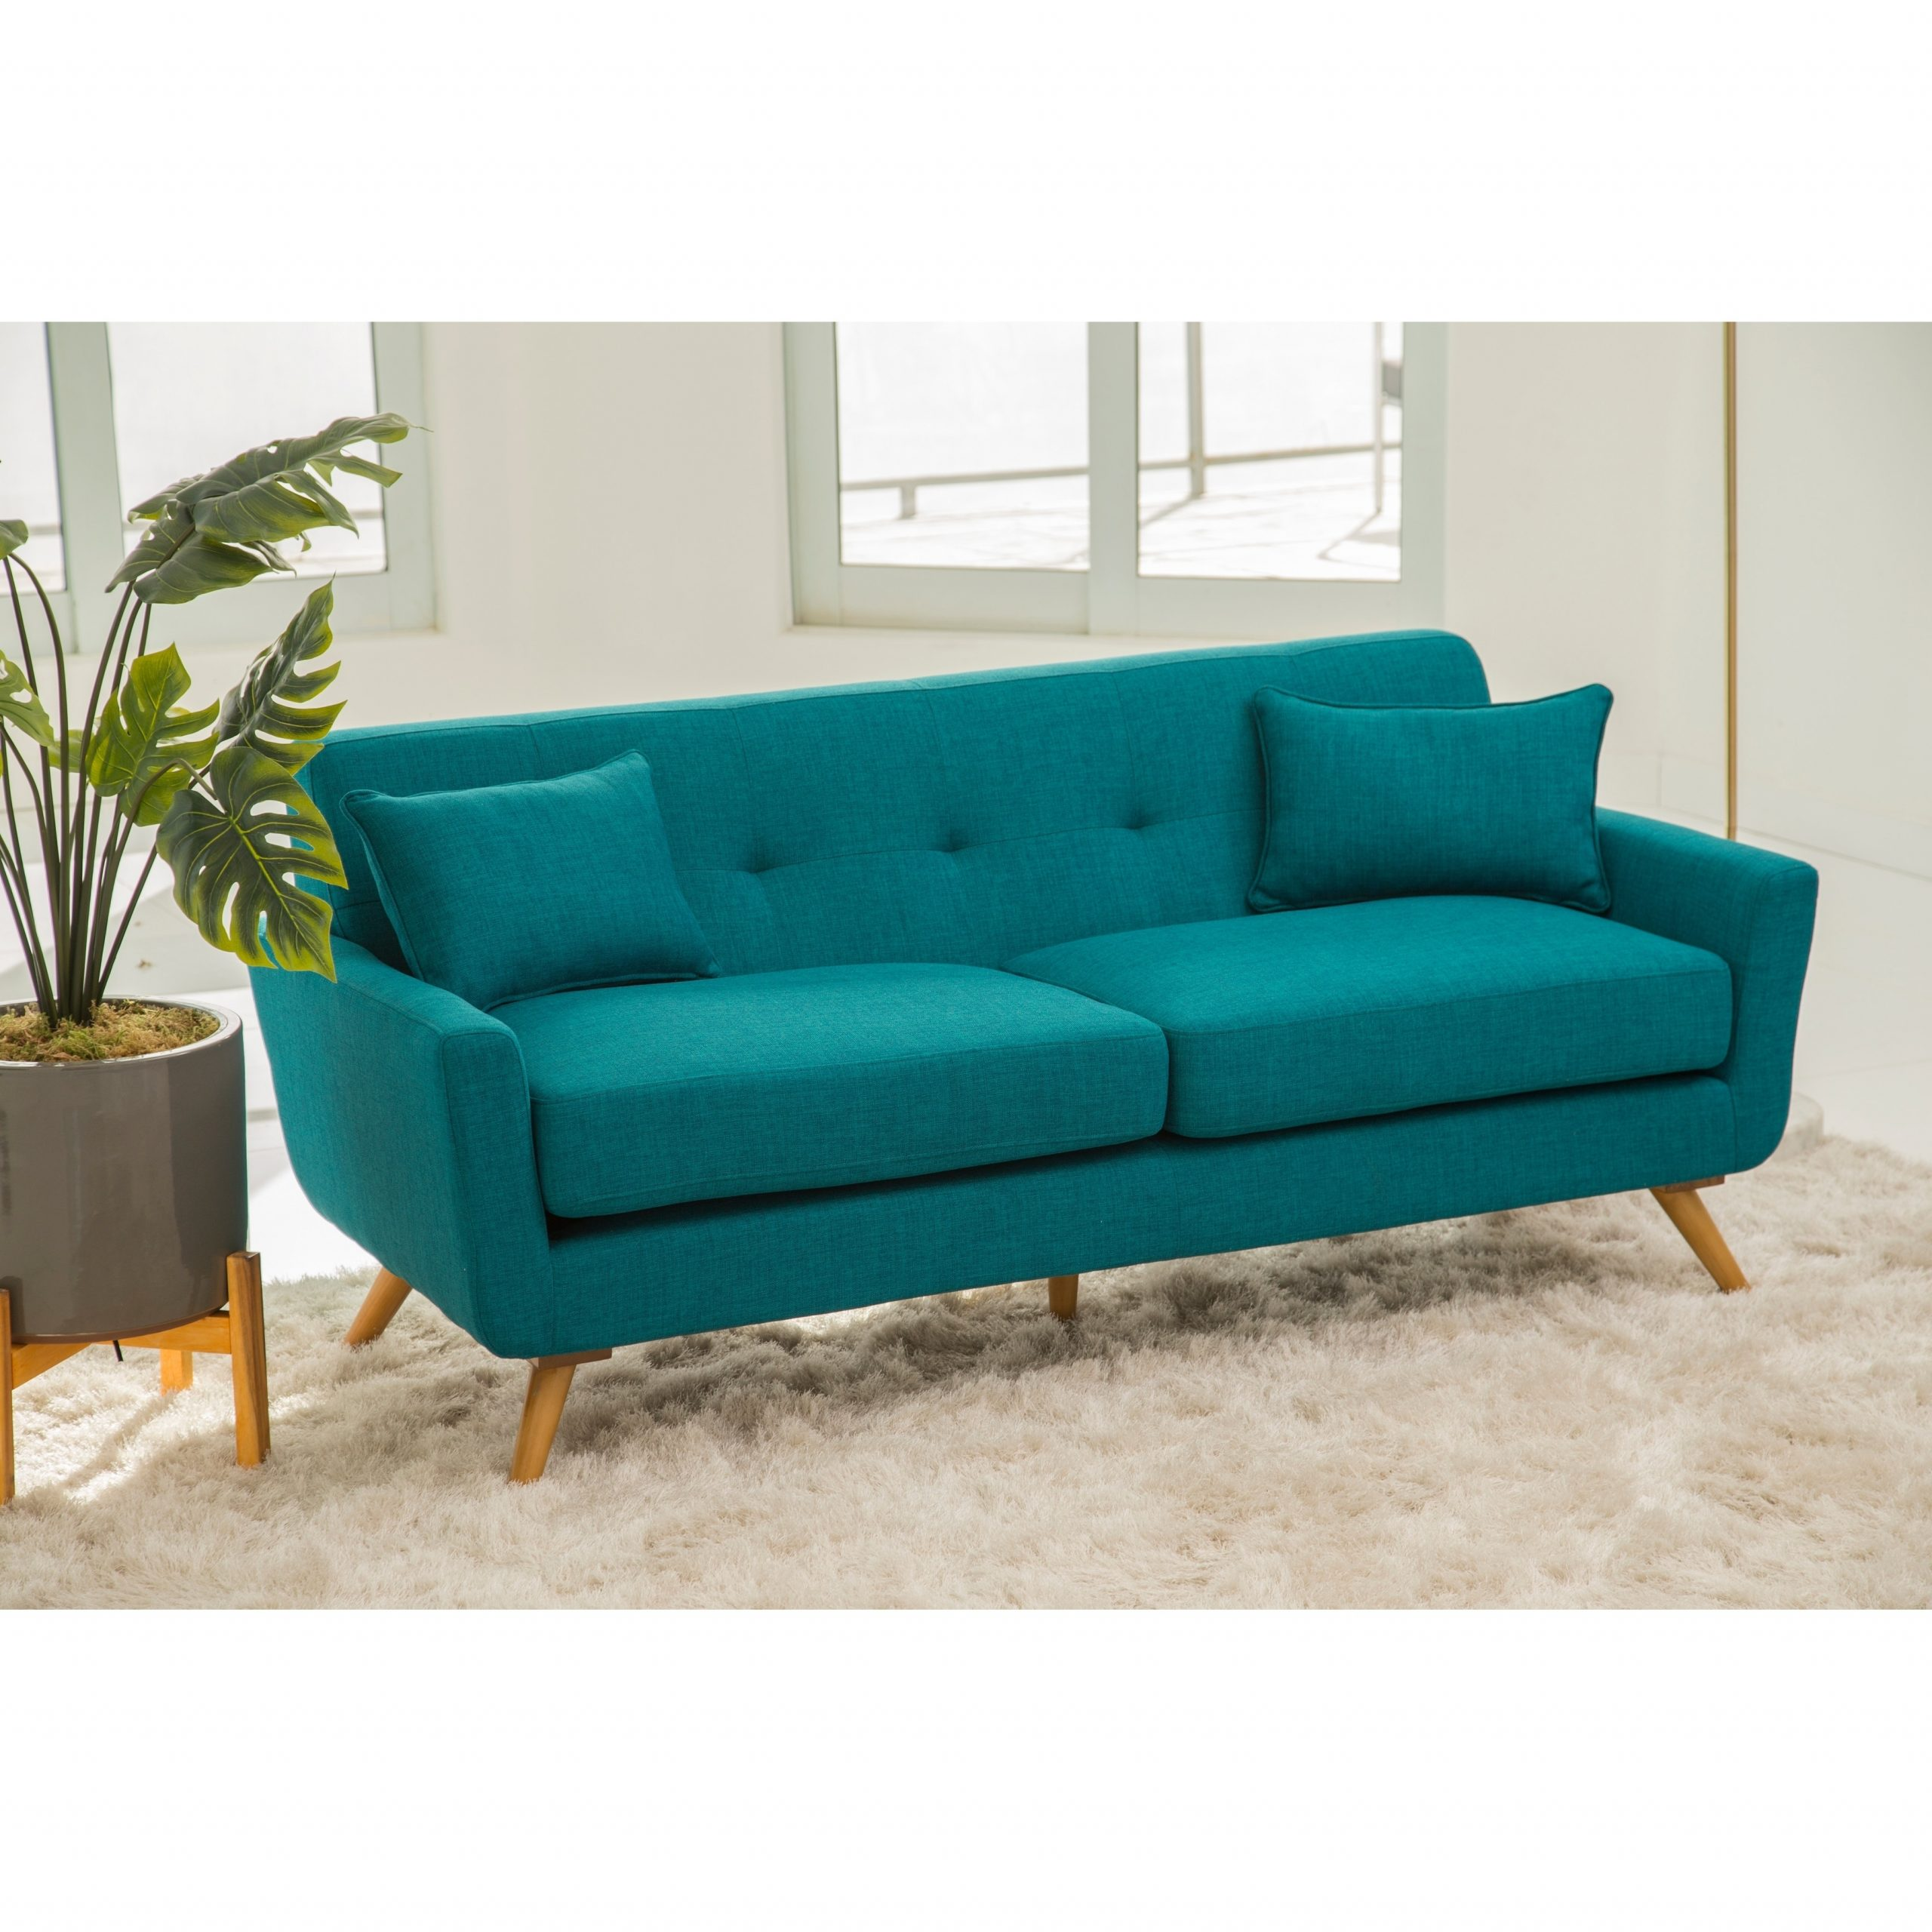 Teal Sofa Bed Abbyson Bradley Mid Century Style Teal Sofa For Most Current Dulce Mid Century Chaise Sofas Dark Blue (View 9 of 25)